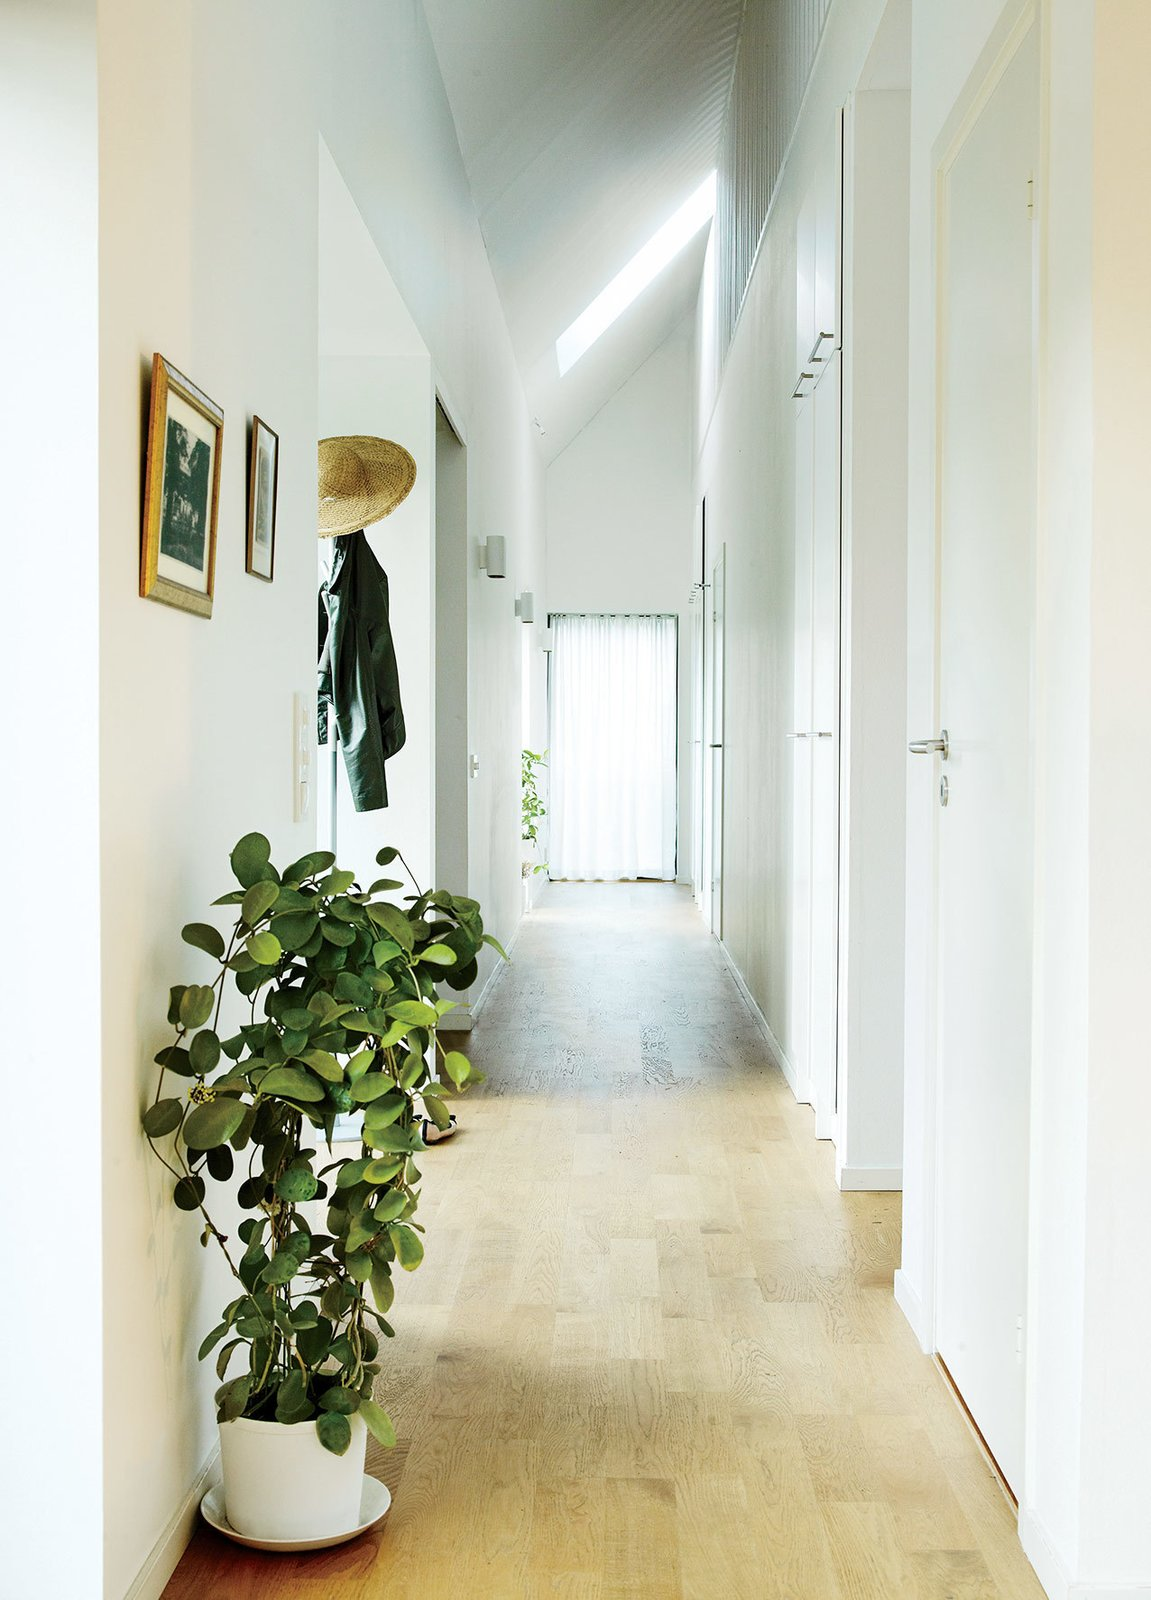 A double-height corridor runs the length of the house, and a slatted wall on the second floor overlooks the space. This Bright Green Prefab in Sweden Looks Just Like a Monopoly House - Photo 2 of 12